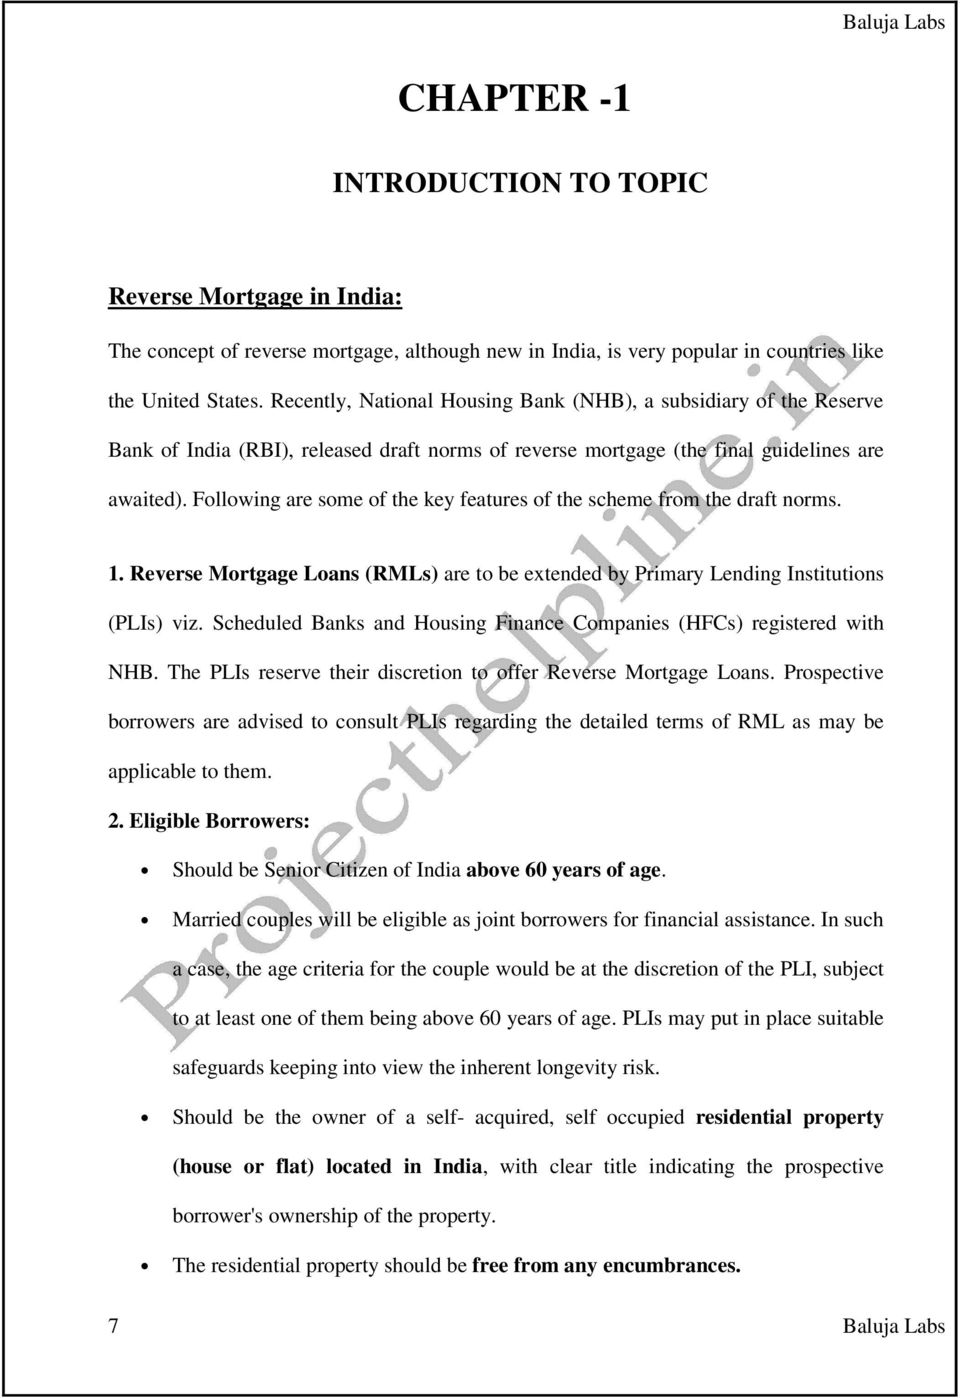 a study of reverse mortgage scheme in india - pdf